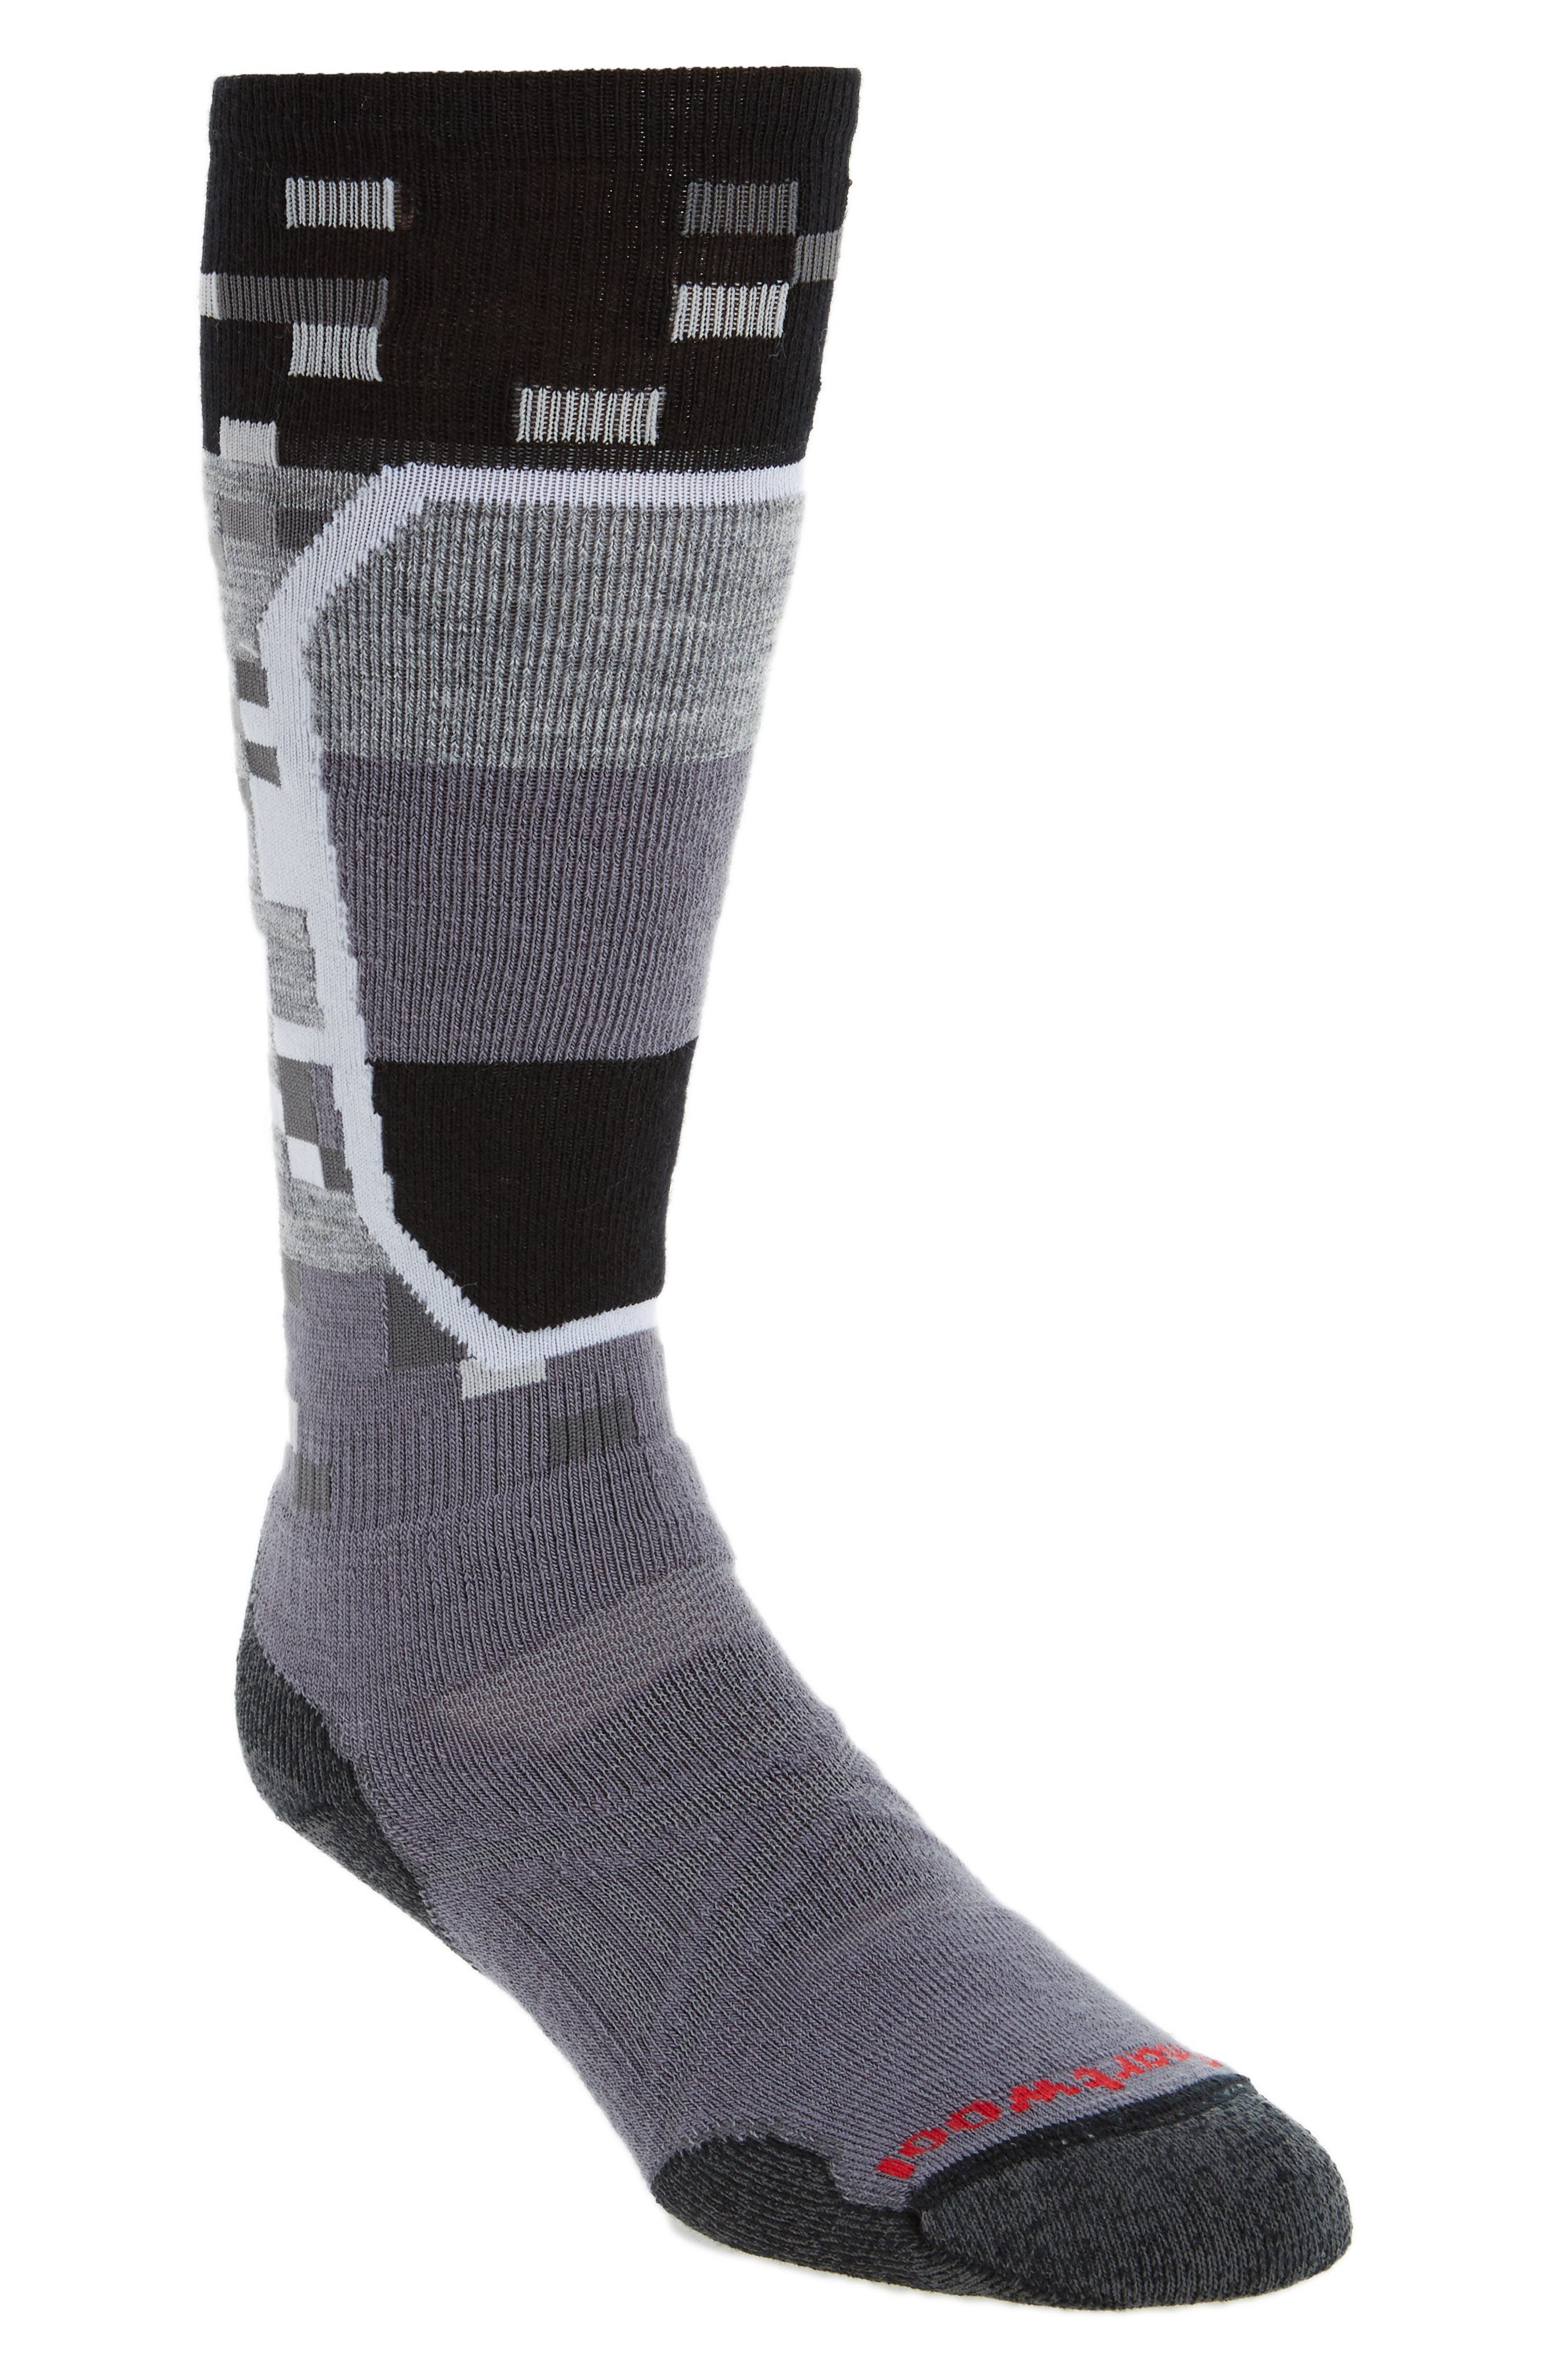 Smartwool PhD Wool Blend Socks